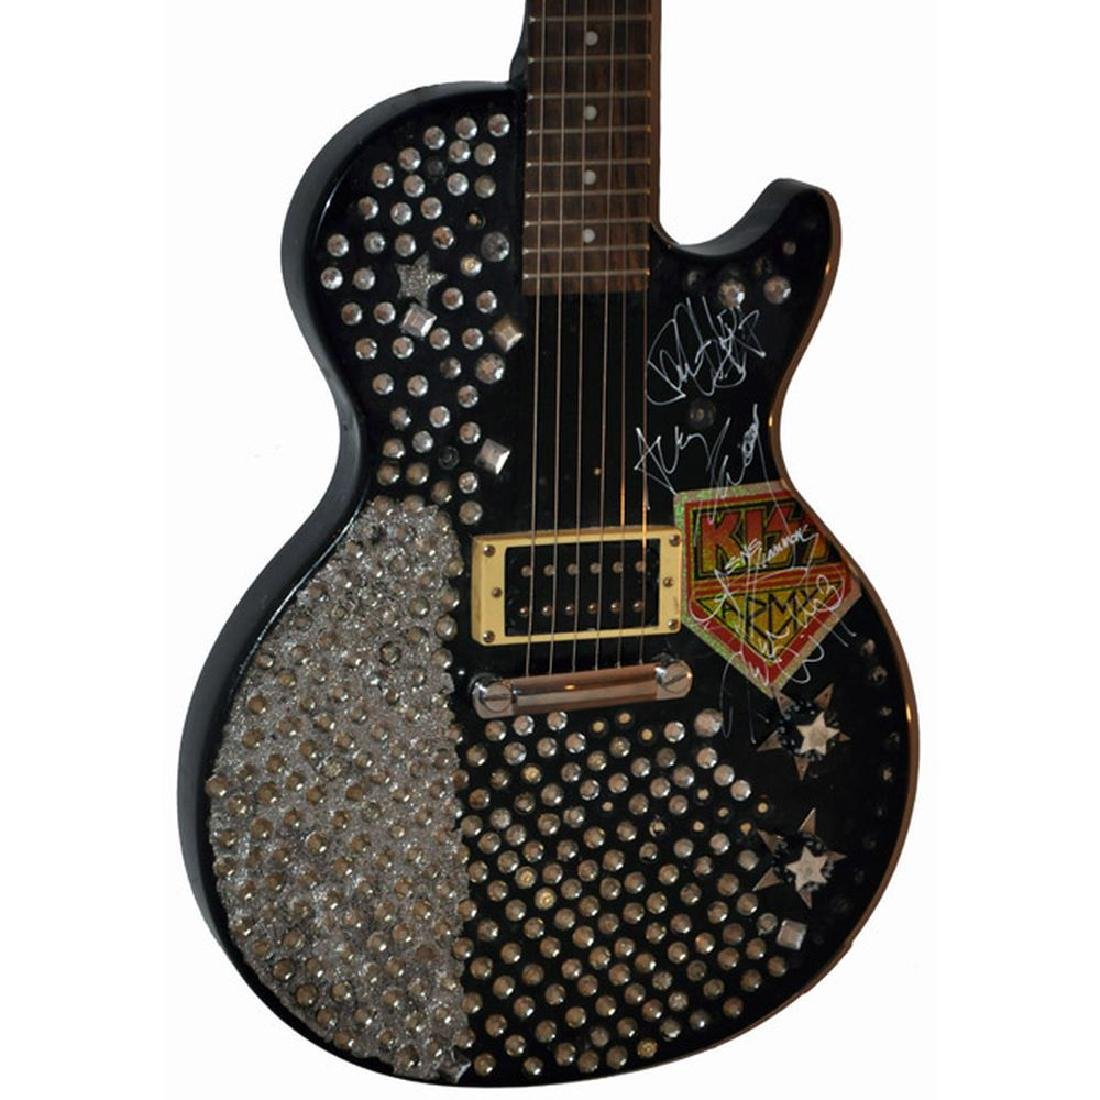 KISS Signed Encrusted Guitar